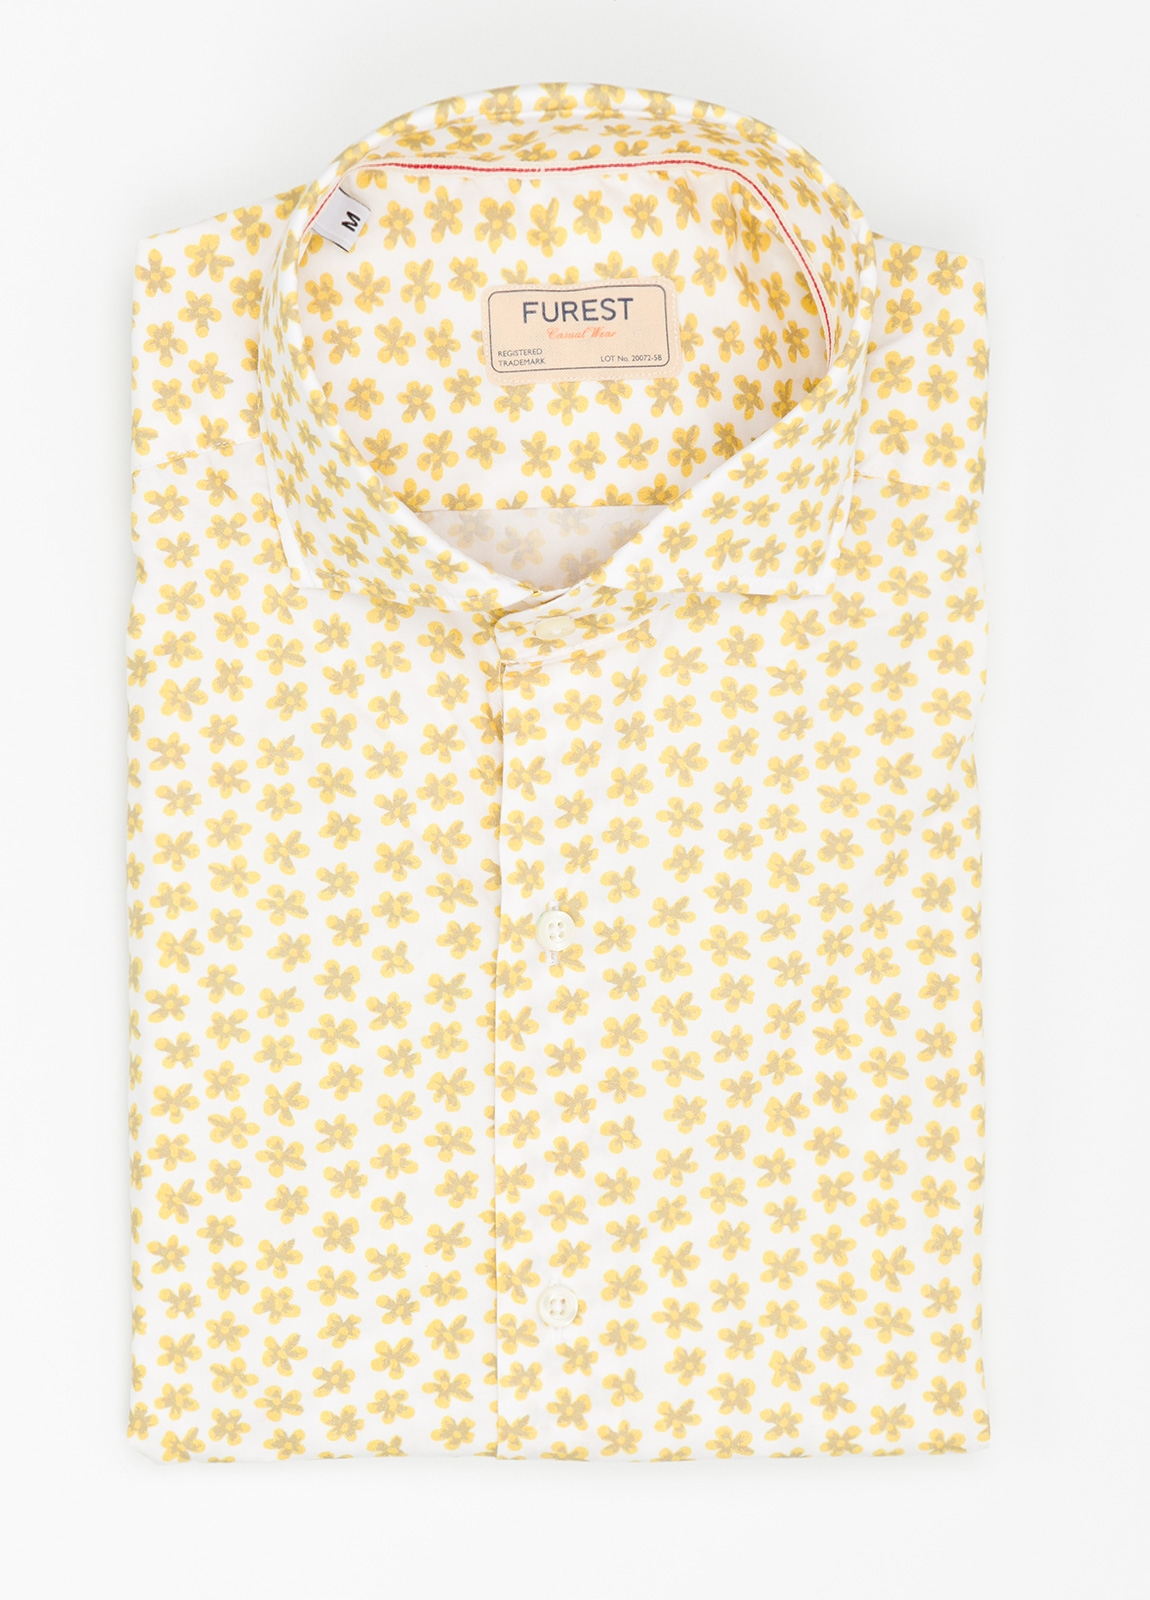 Camisa Casual Wear SLIM FIT Modelo CAPRI estampado floral color amarillo. 100% Algodón.